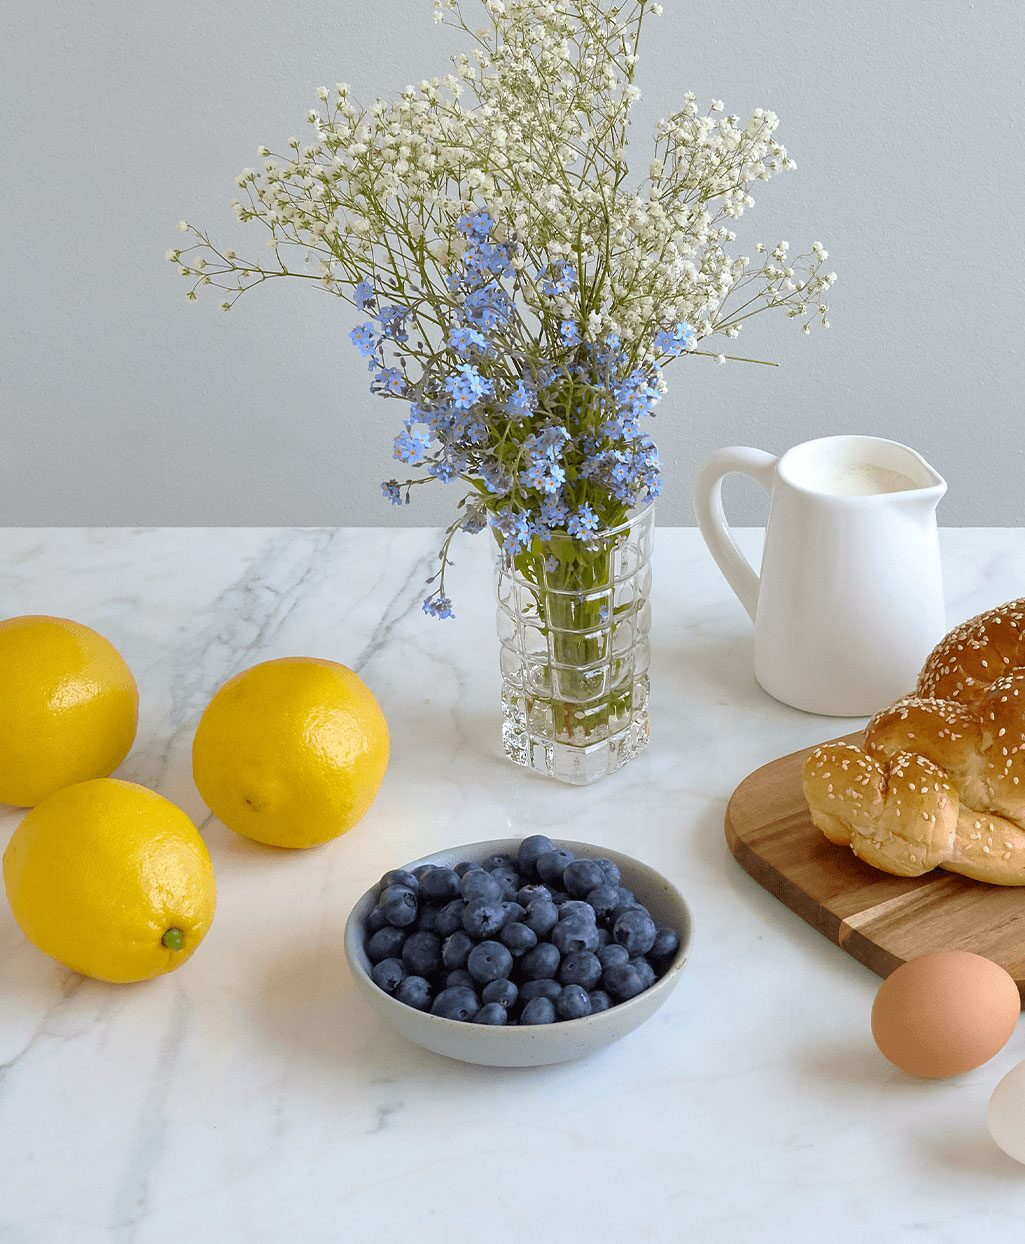 A bouquet of blue flowers and baby's breath in a glass vase with lemons, blueberries and a loaf of bread on a white table.